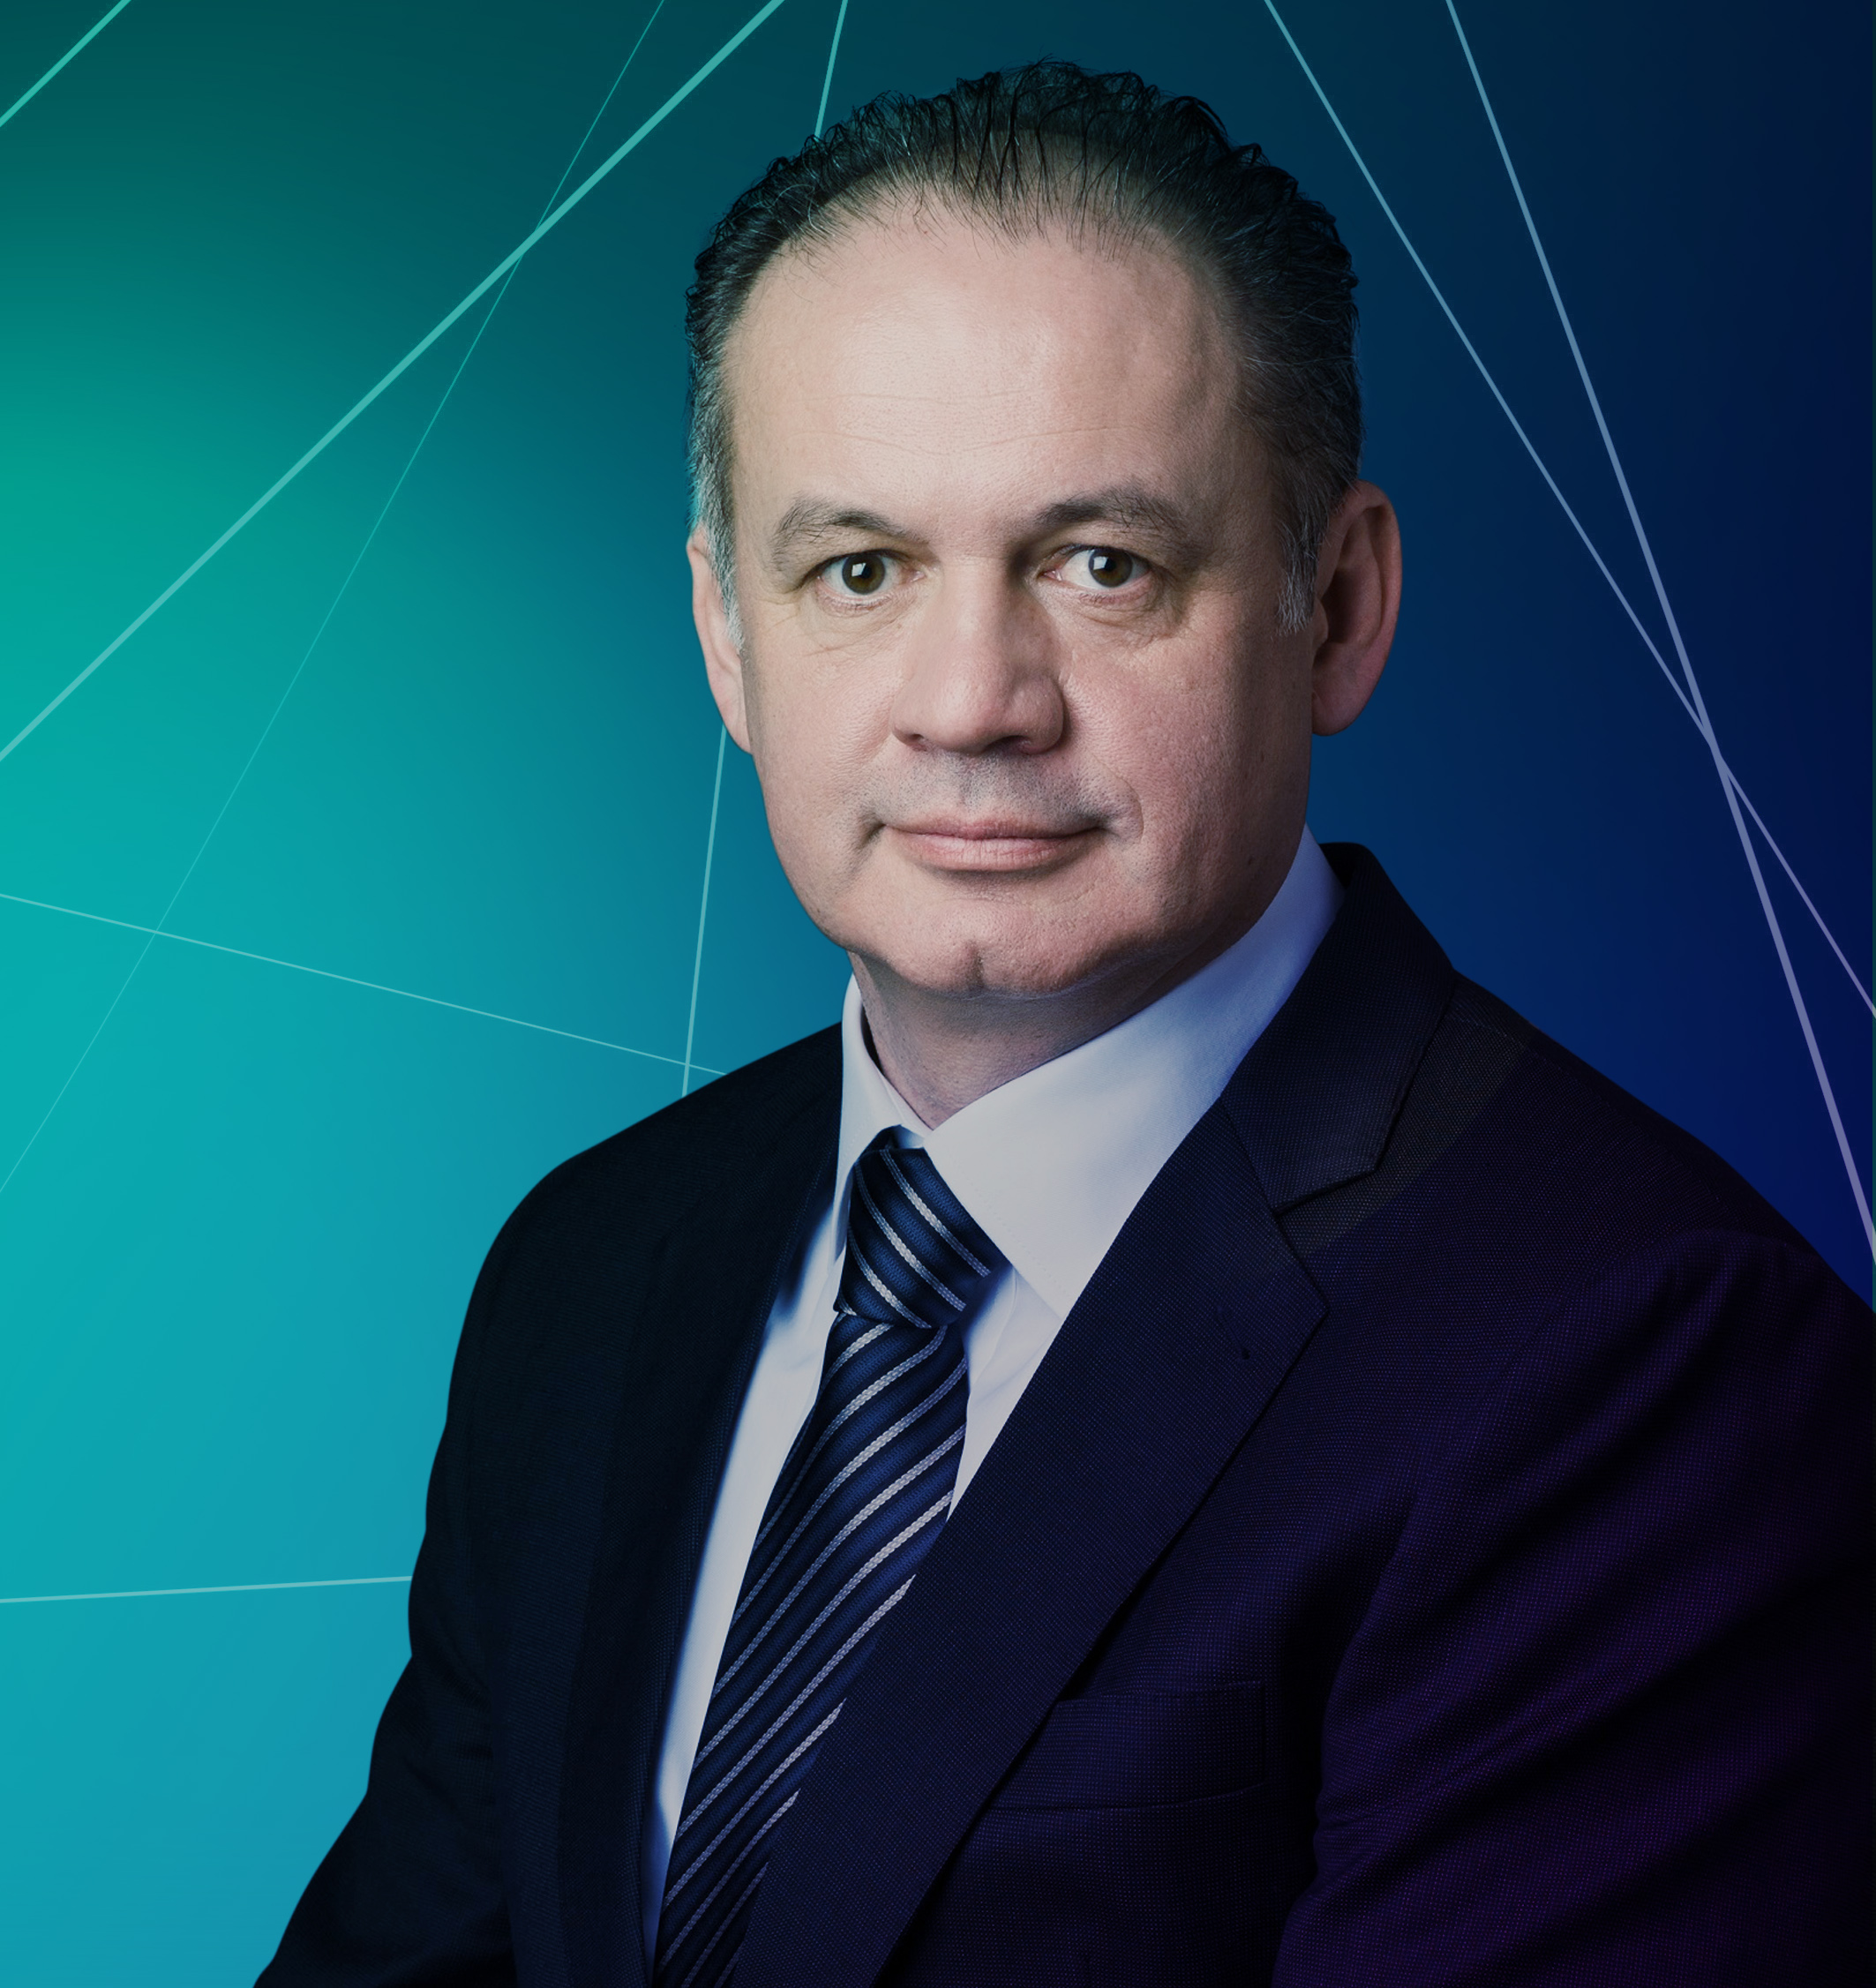 Andrej Kiska Future Port Prague 10.—11. 9. 2019